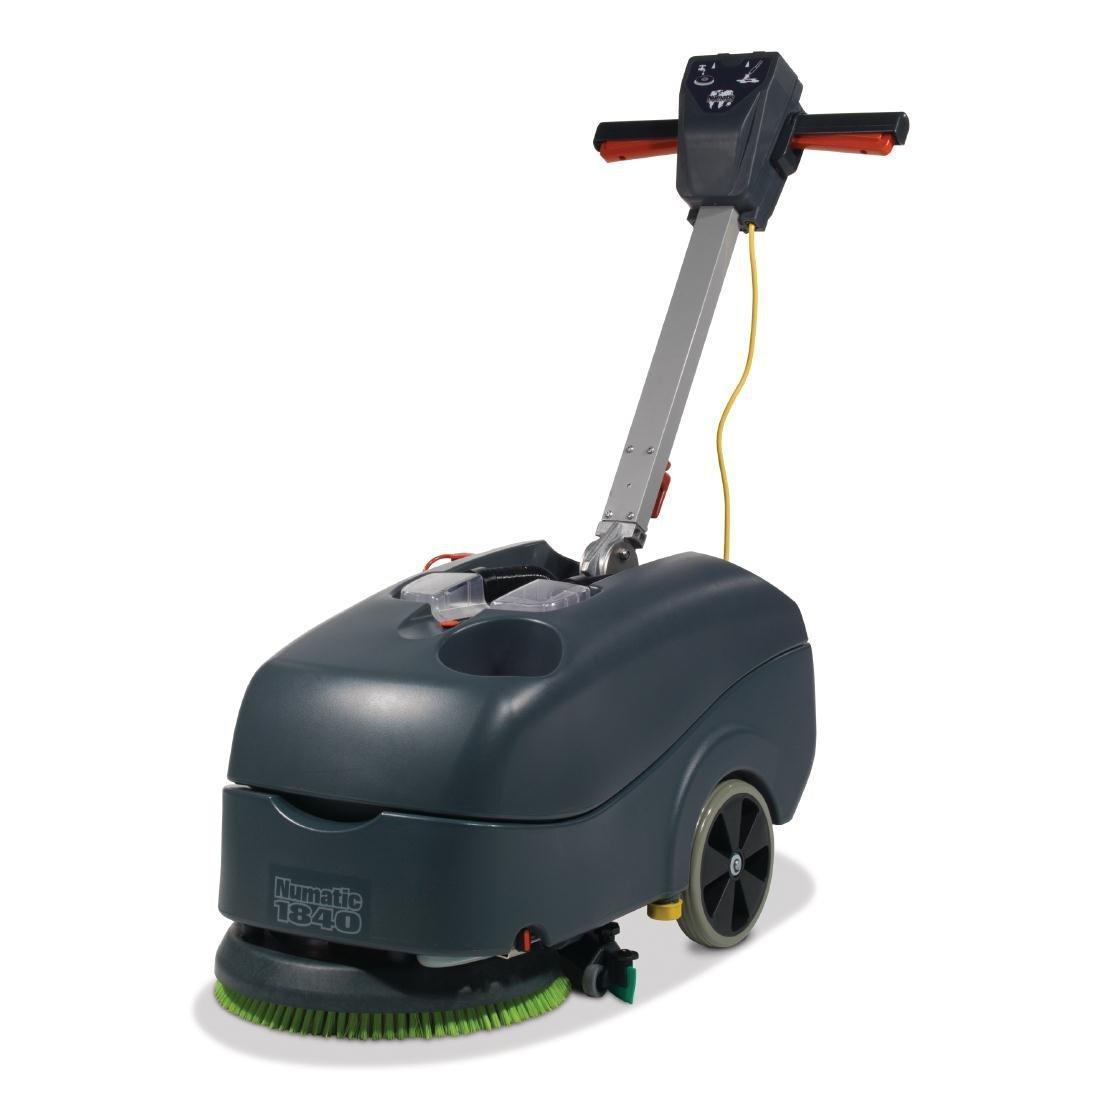 Numatic Small Scrubber Drier TTB1840G - GH886